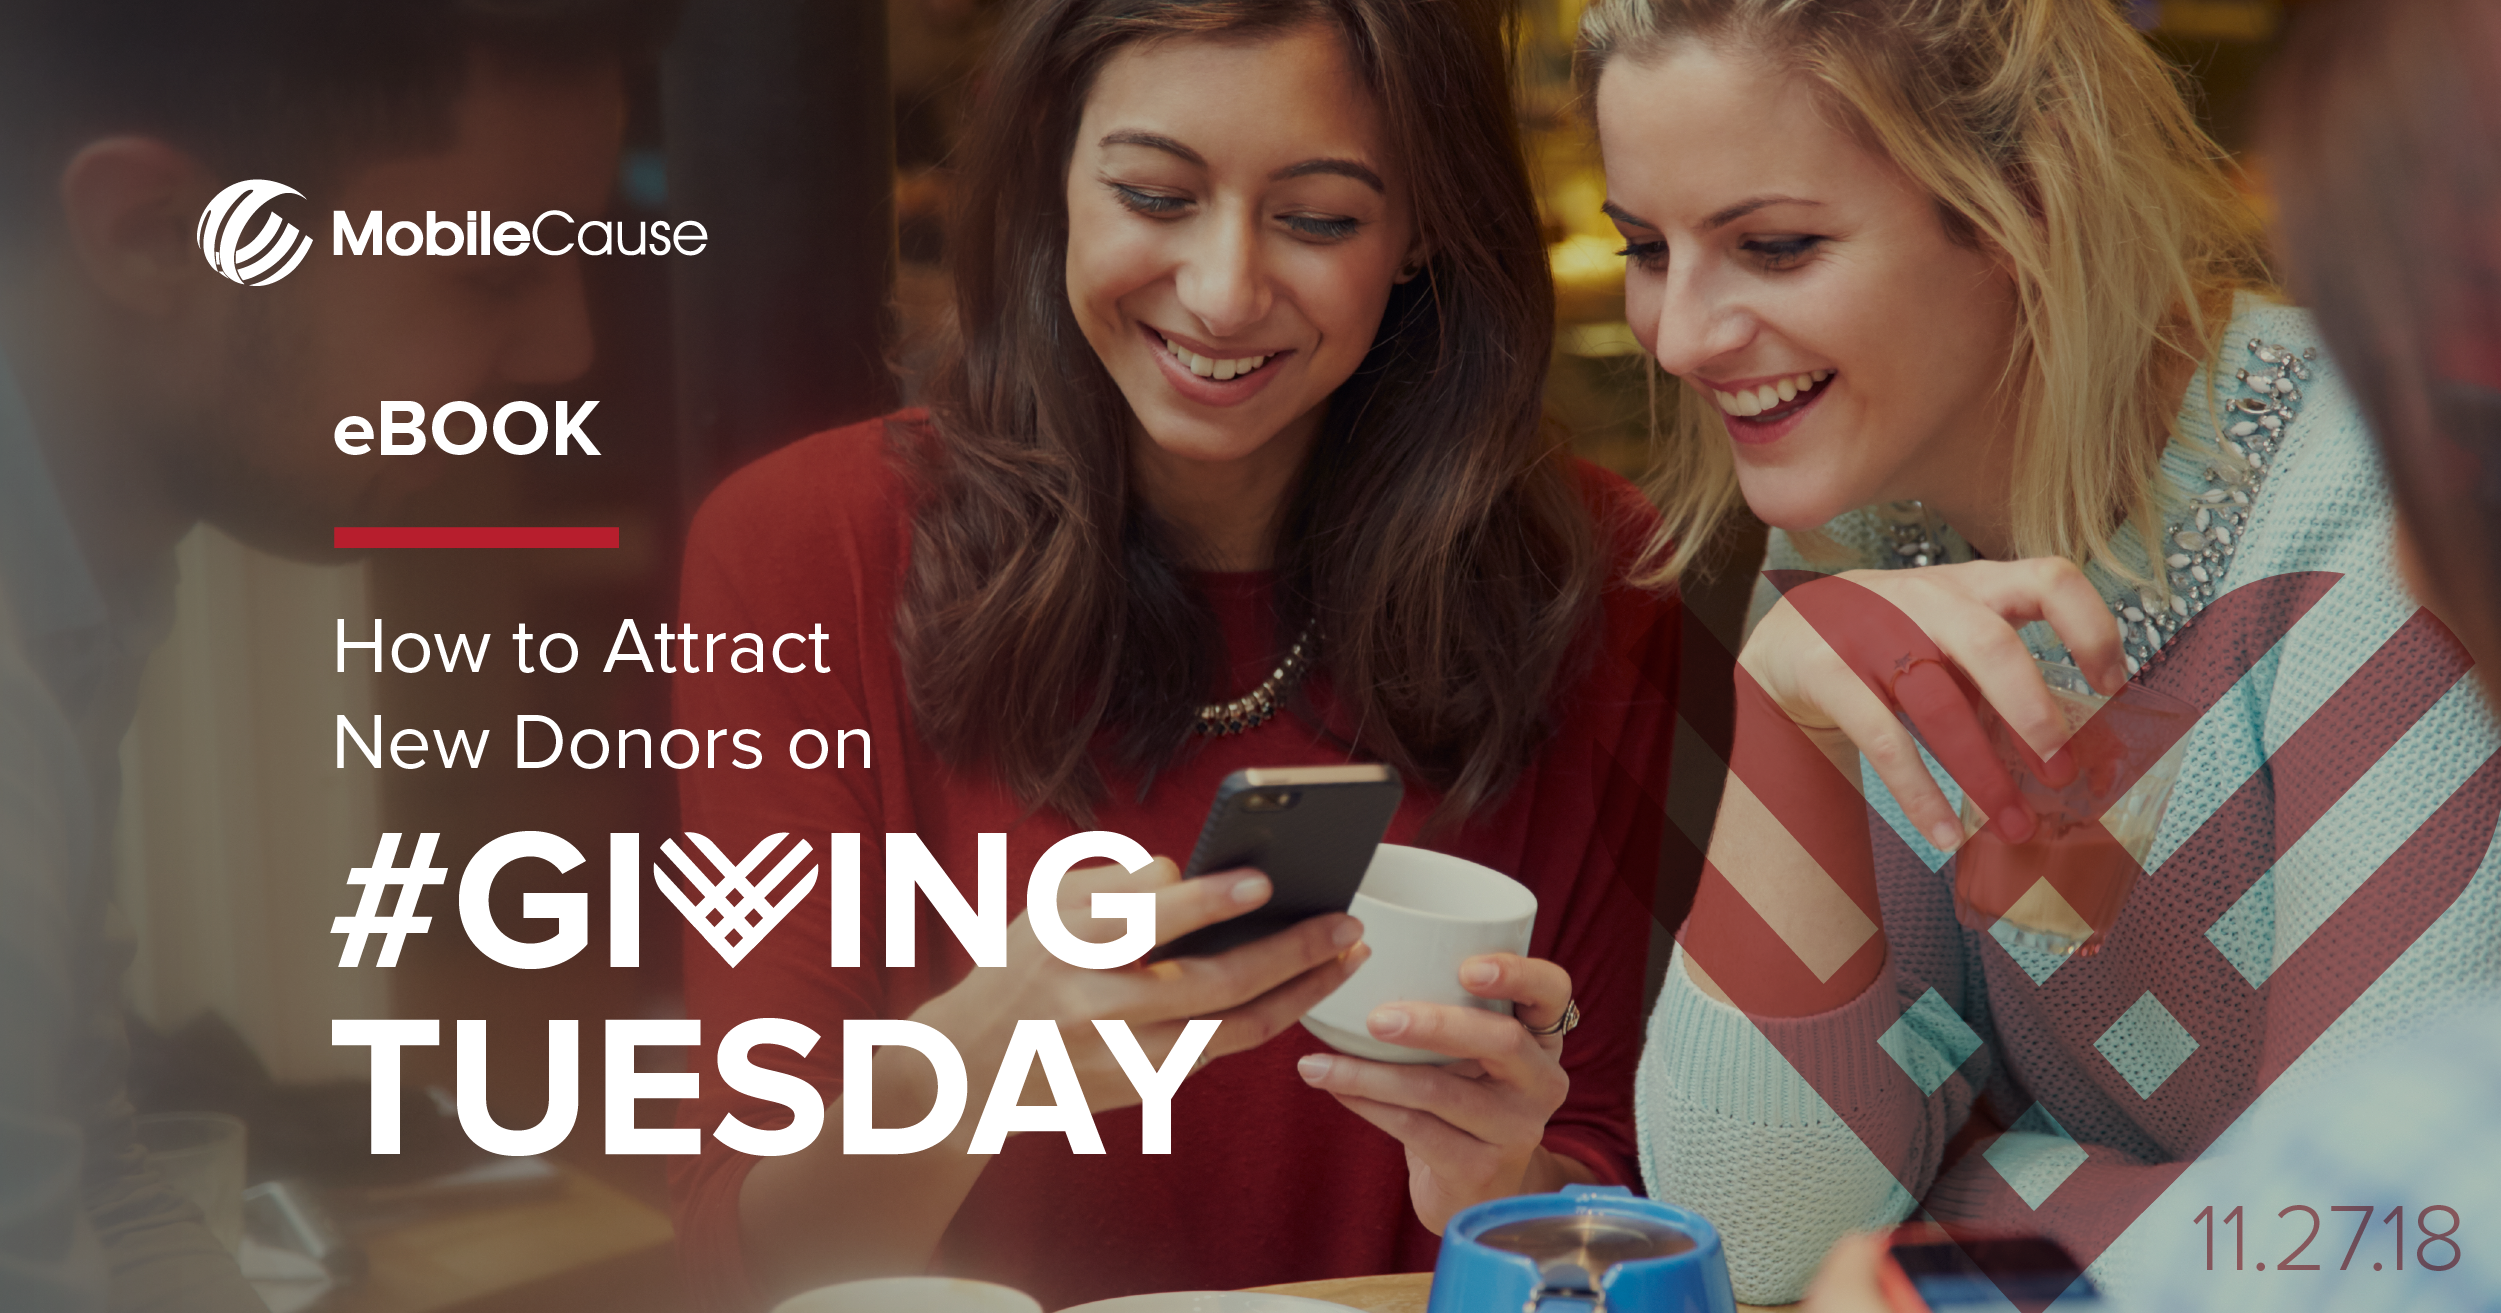 HowtoAttractNewDonorson_GivingTuesday_2018_eBook_Graphics_Email 1